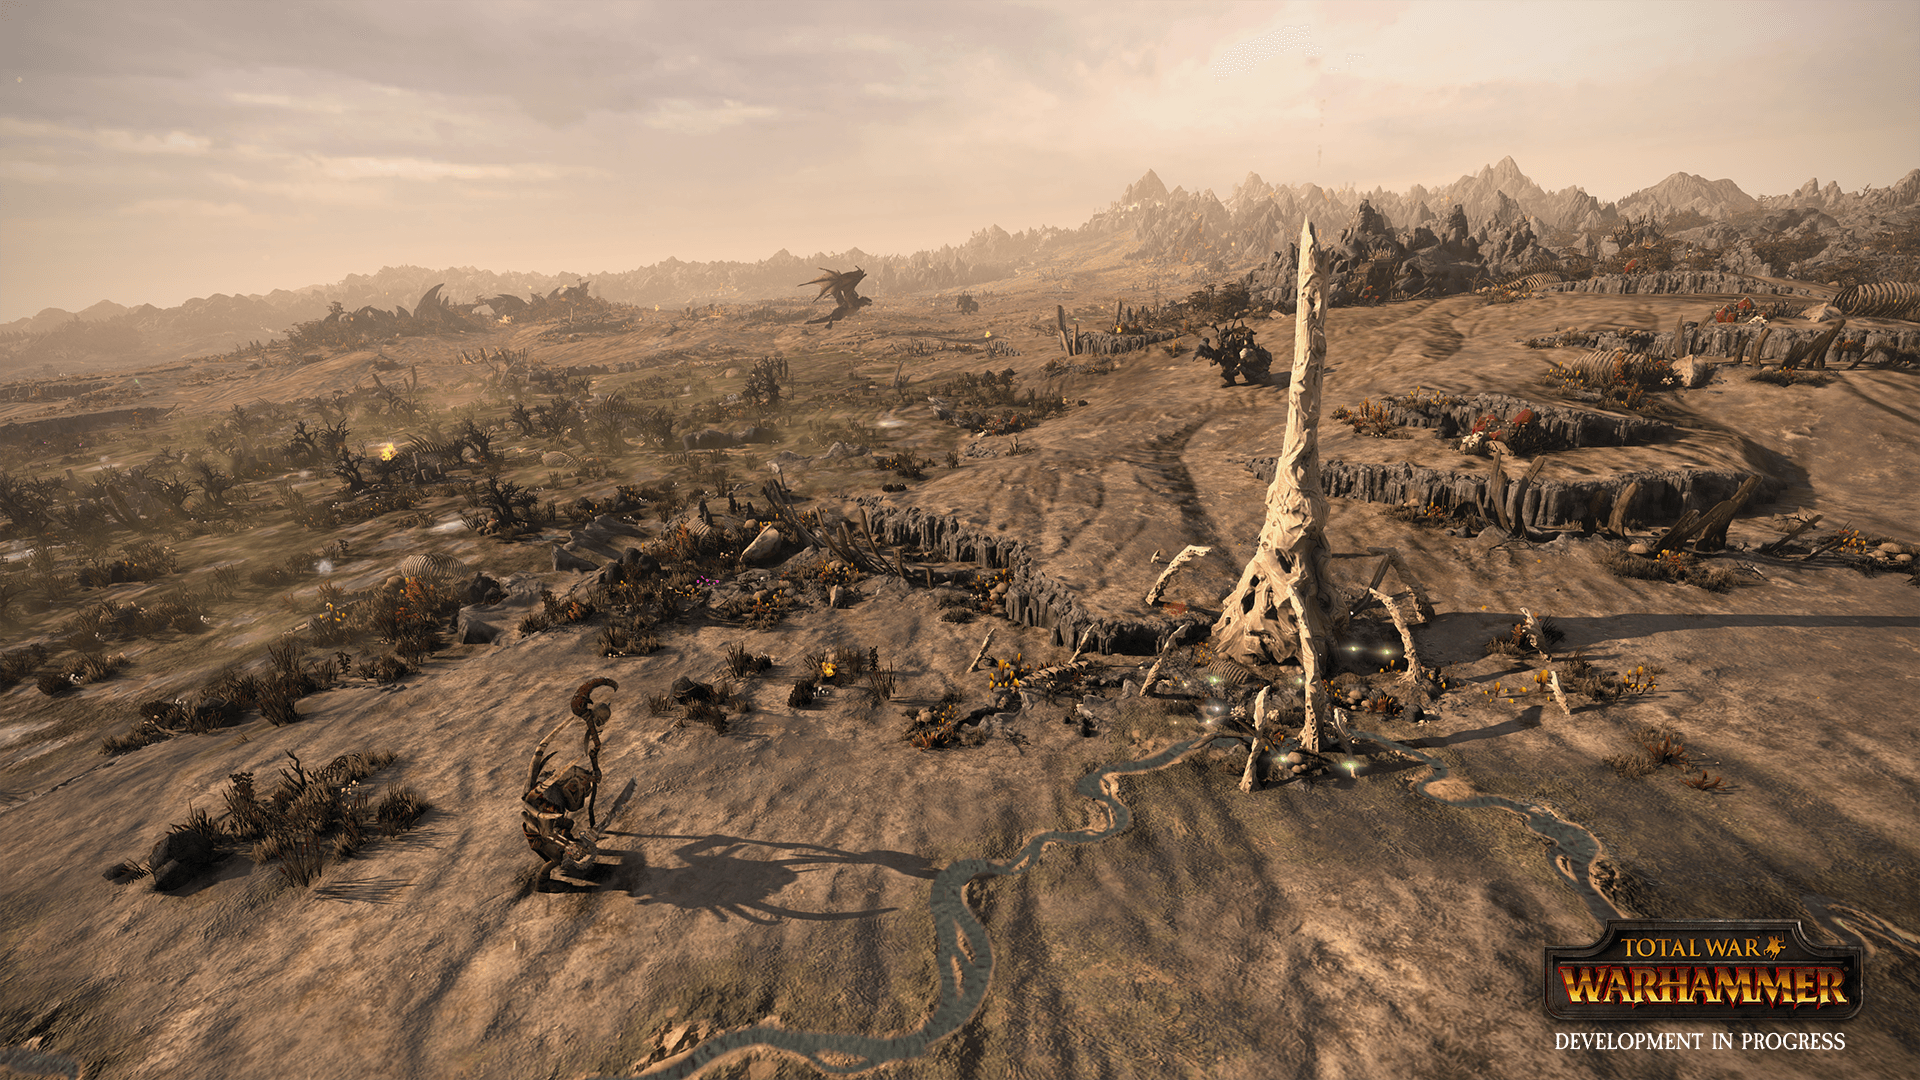 Total War: Warhammer Campaign Press Preview - Greenskins